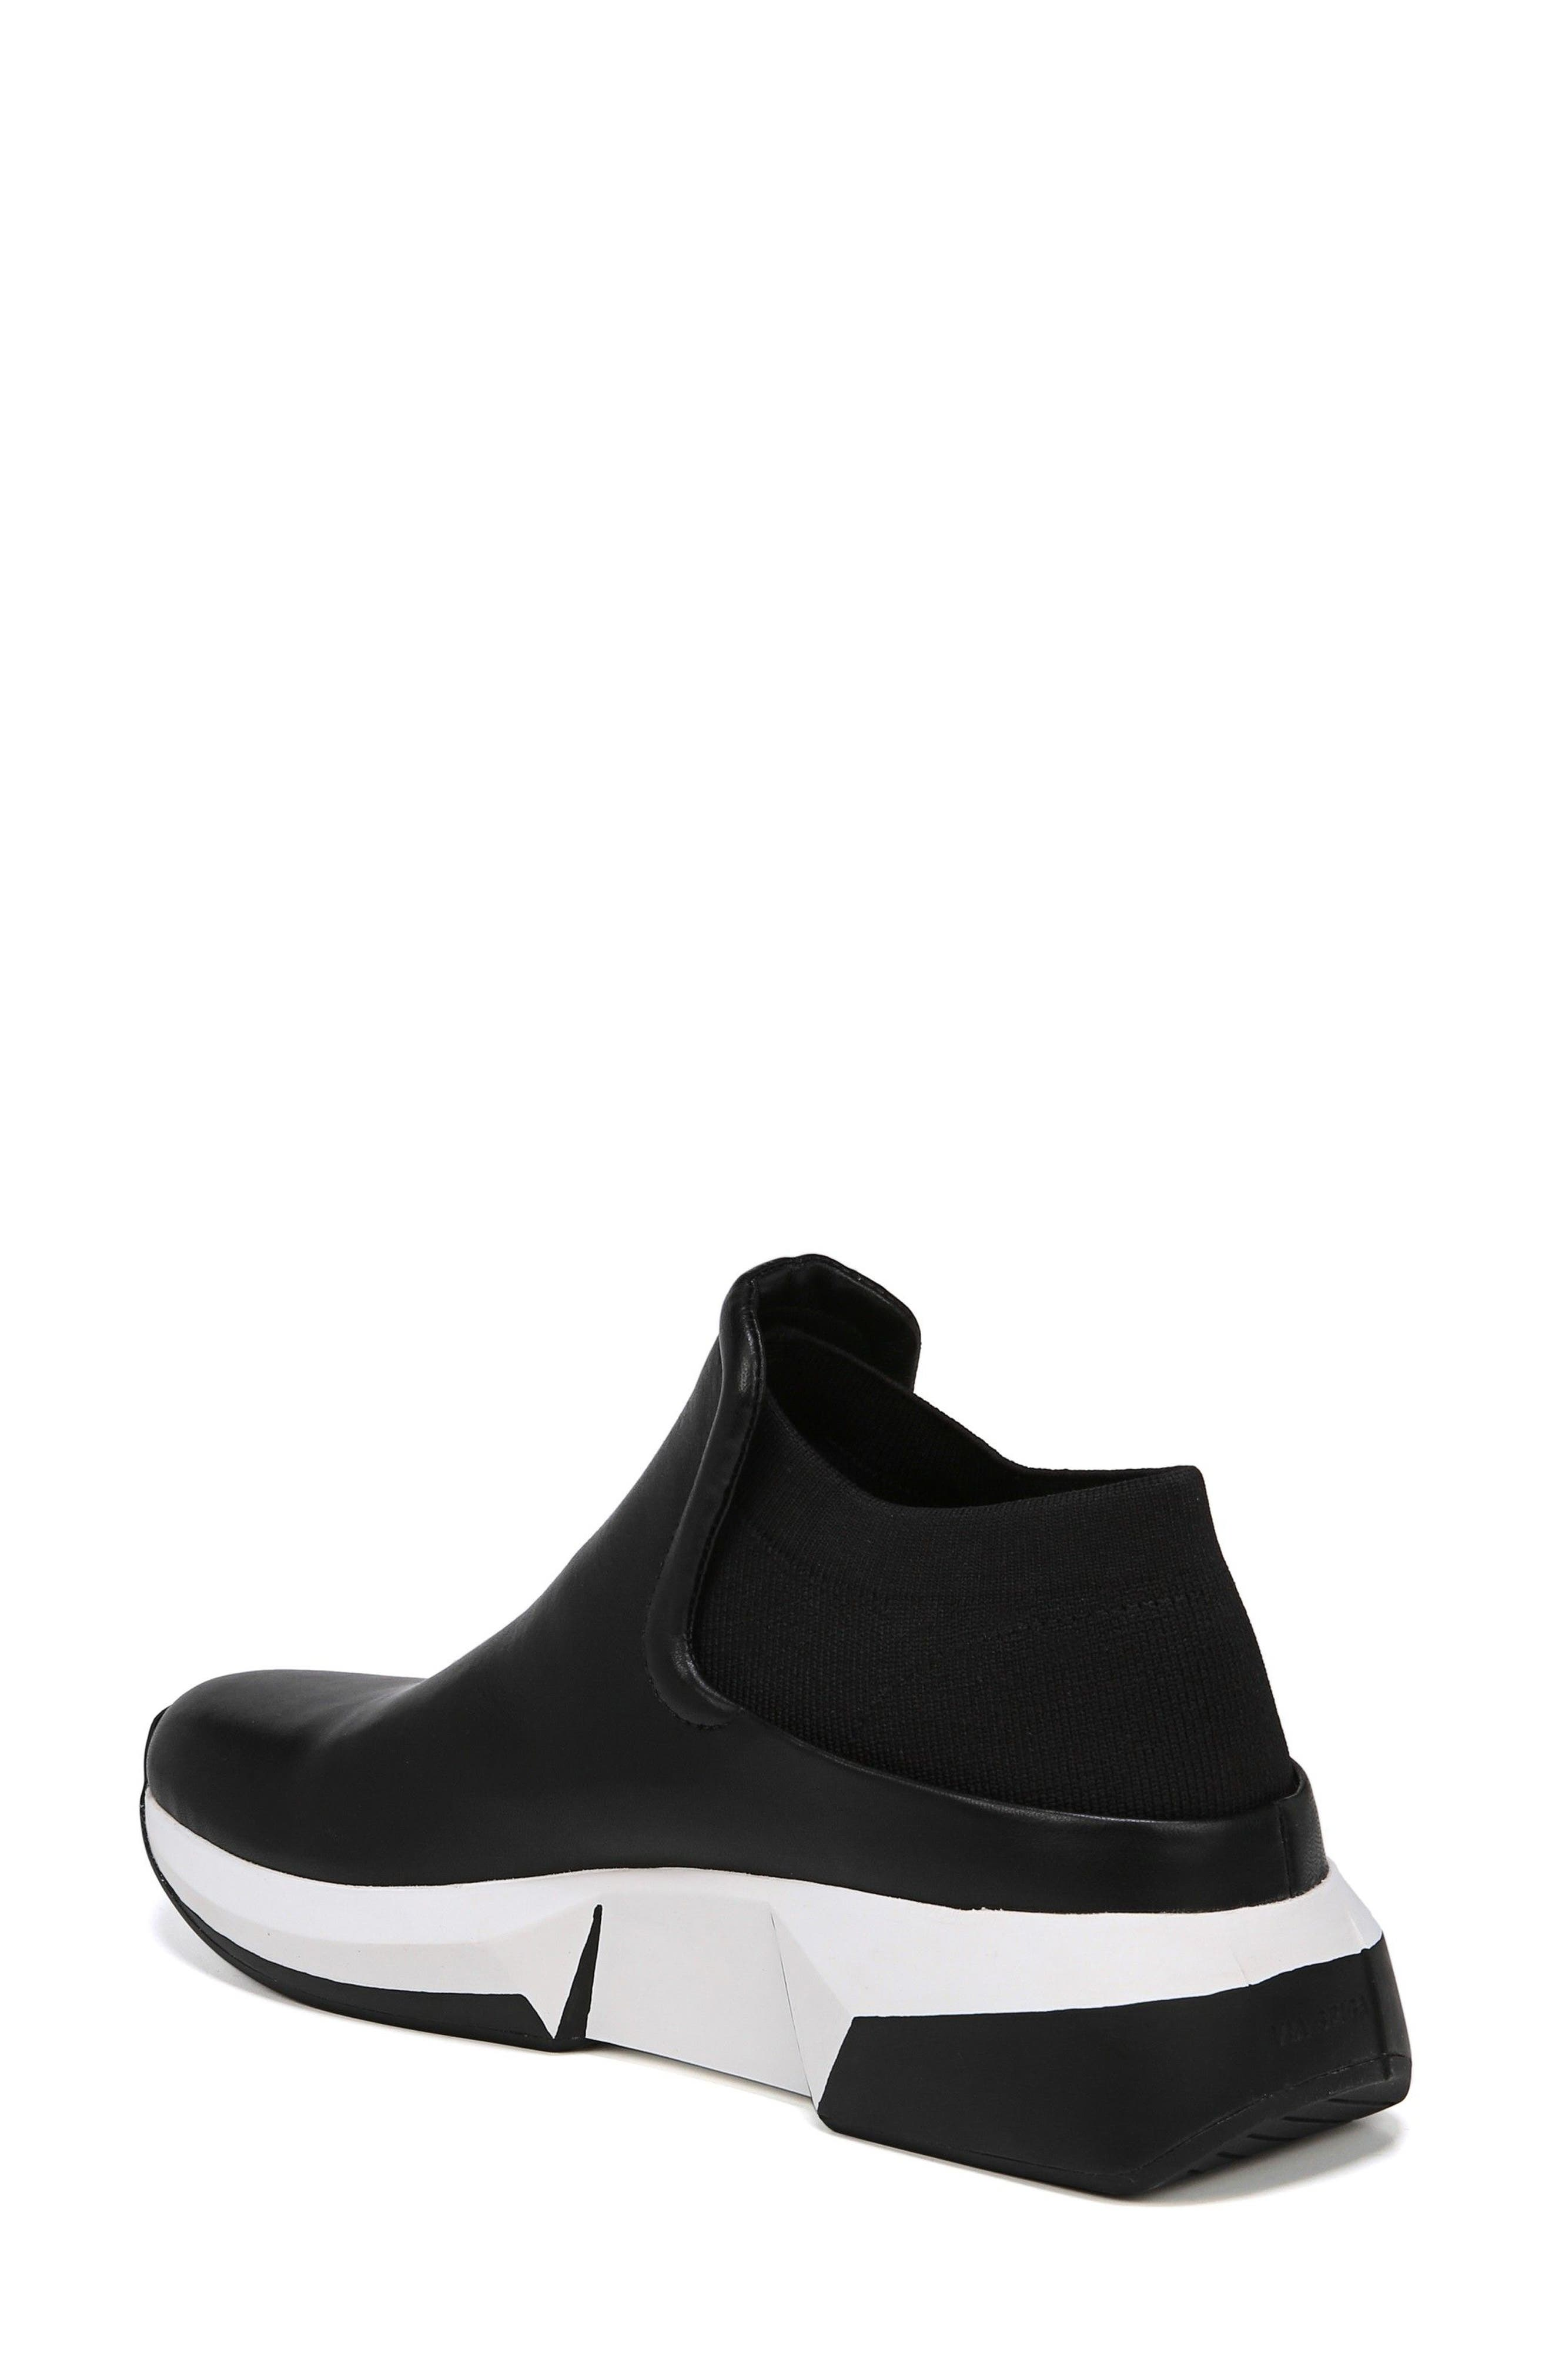 Veila Slip-On Sneaker,                             Alternate thumbnail 2, color,                             001